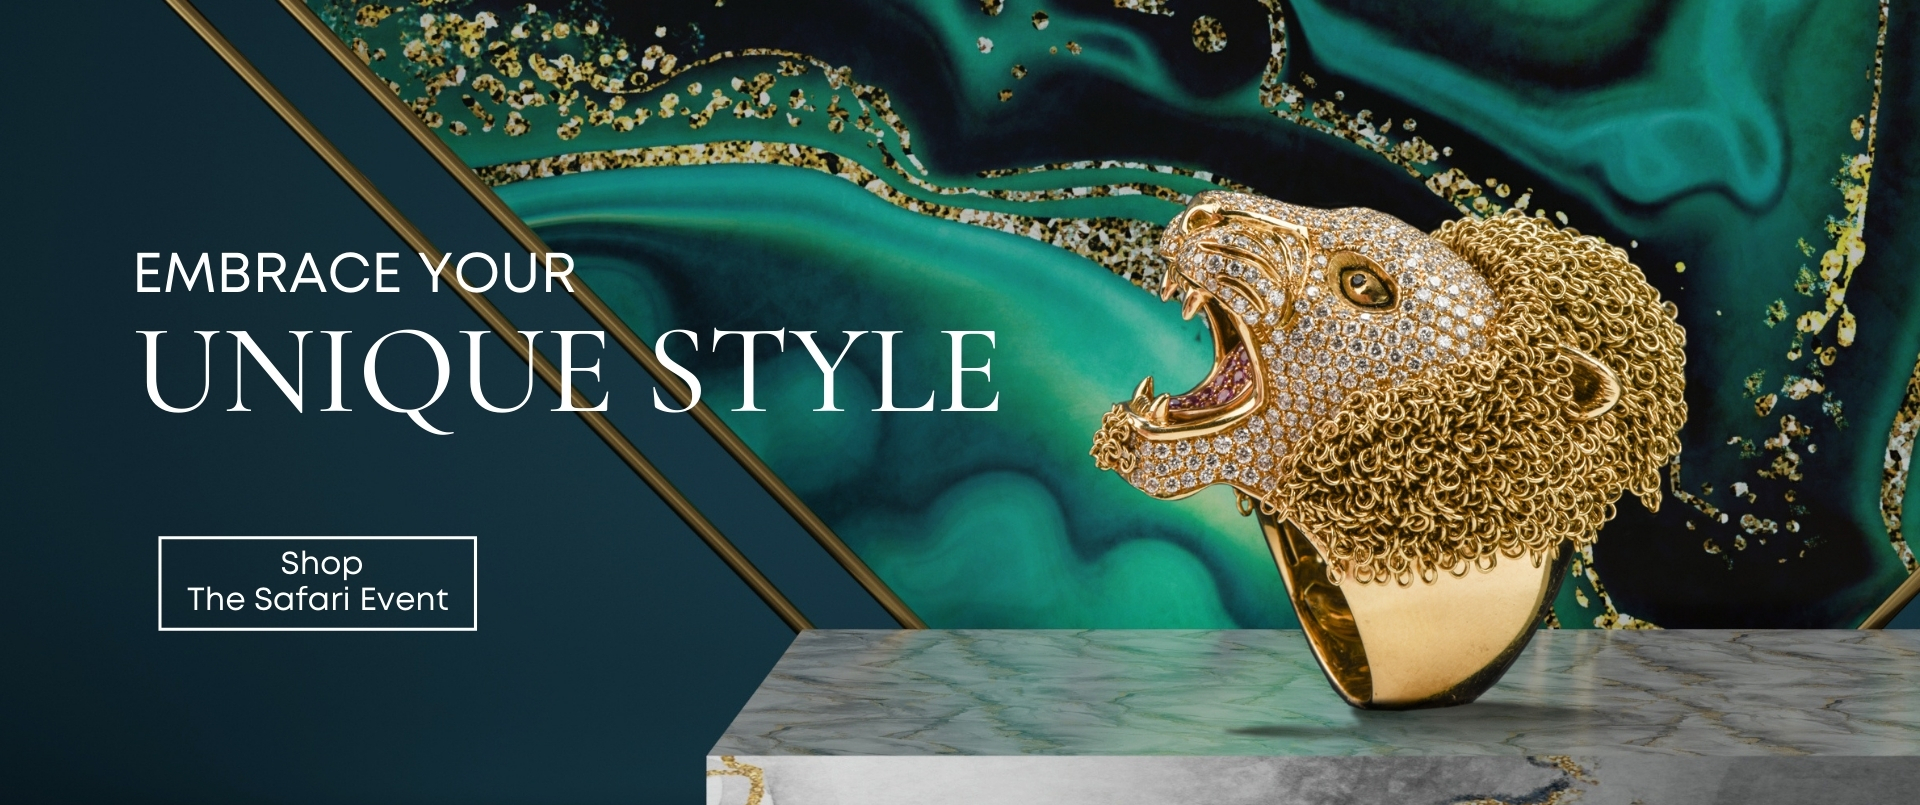 FINE JEWELRY ANIMAL COLLECTION